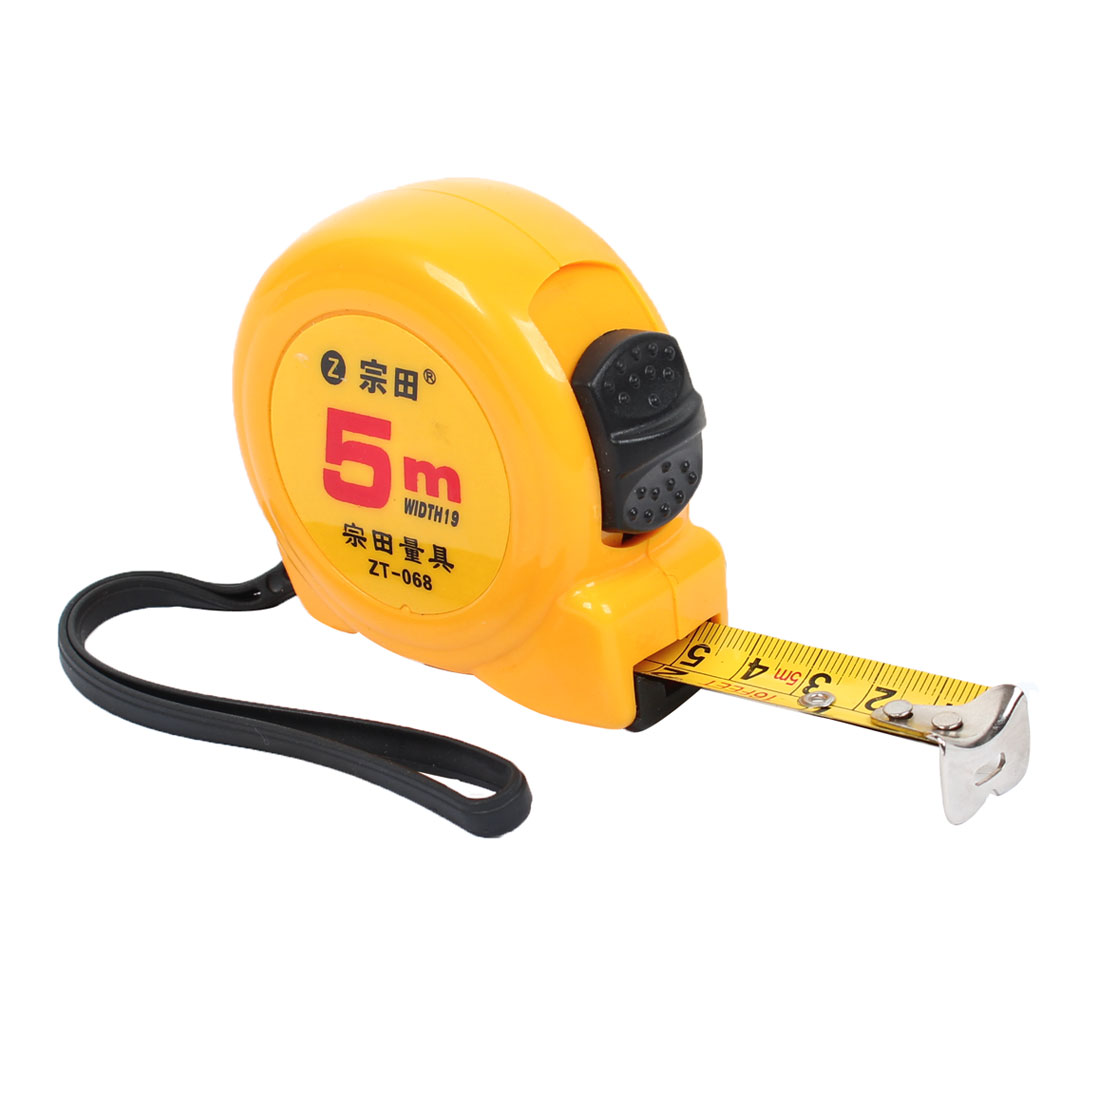 Yellow-Metal-Retractable-Ruler-Tool-Measuring-Tape-5-Meters-w-Strap